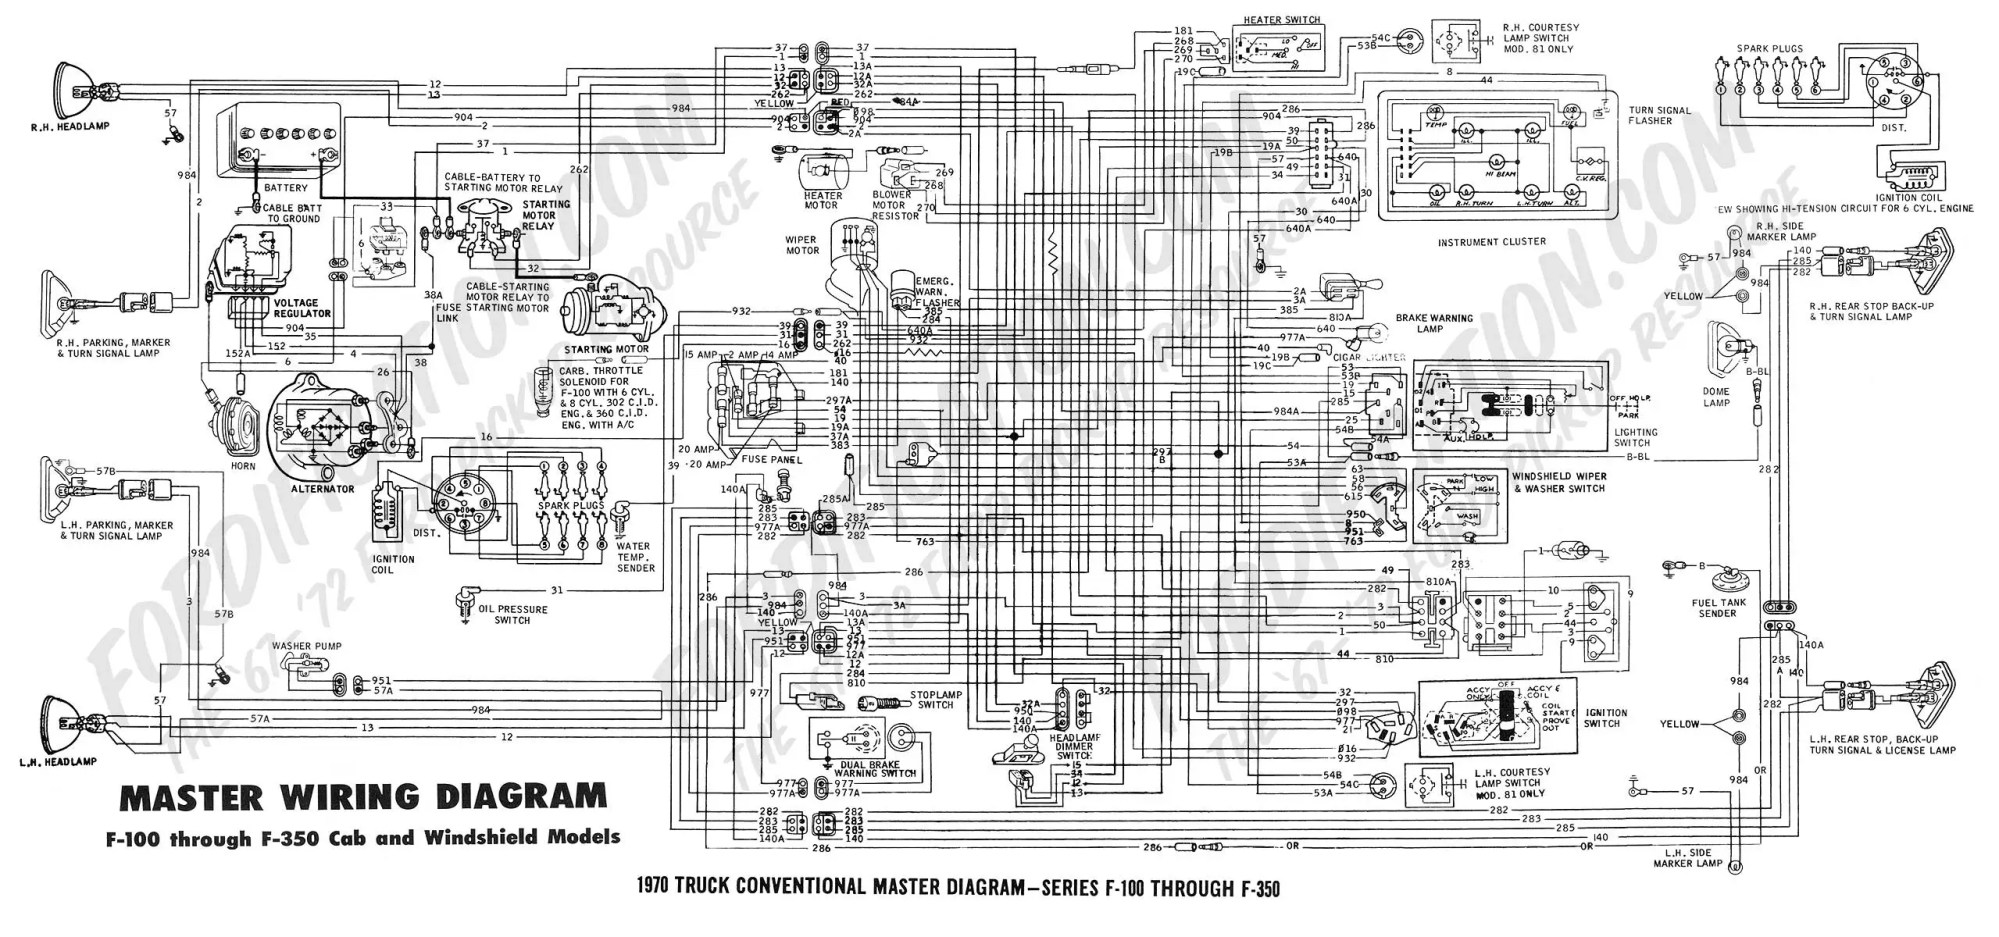 hight resolution of f250 wiring schematic wiring diagrams 2001 f250 radio wiring diagram 2001 f250 wiring diagram